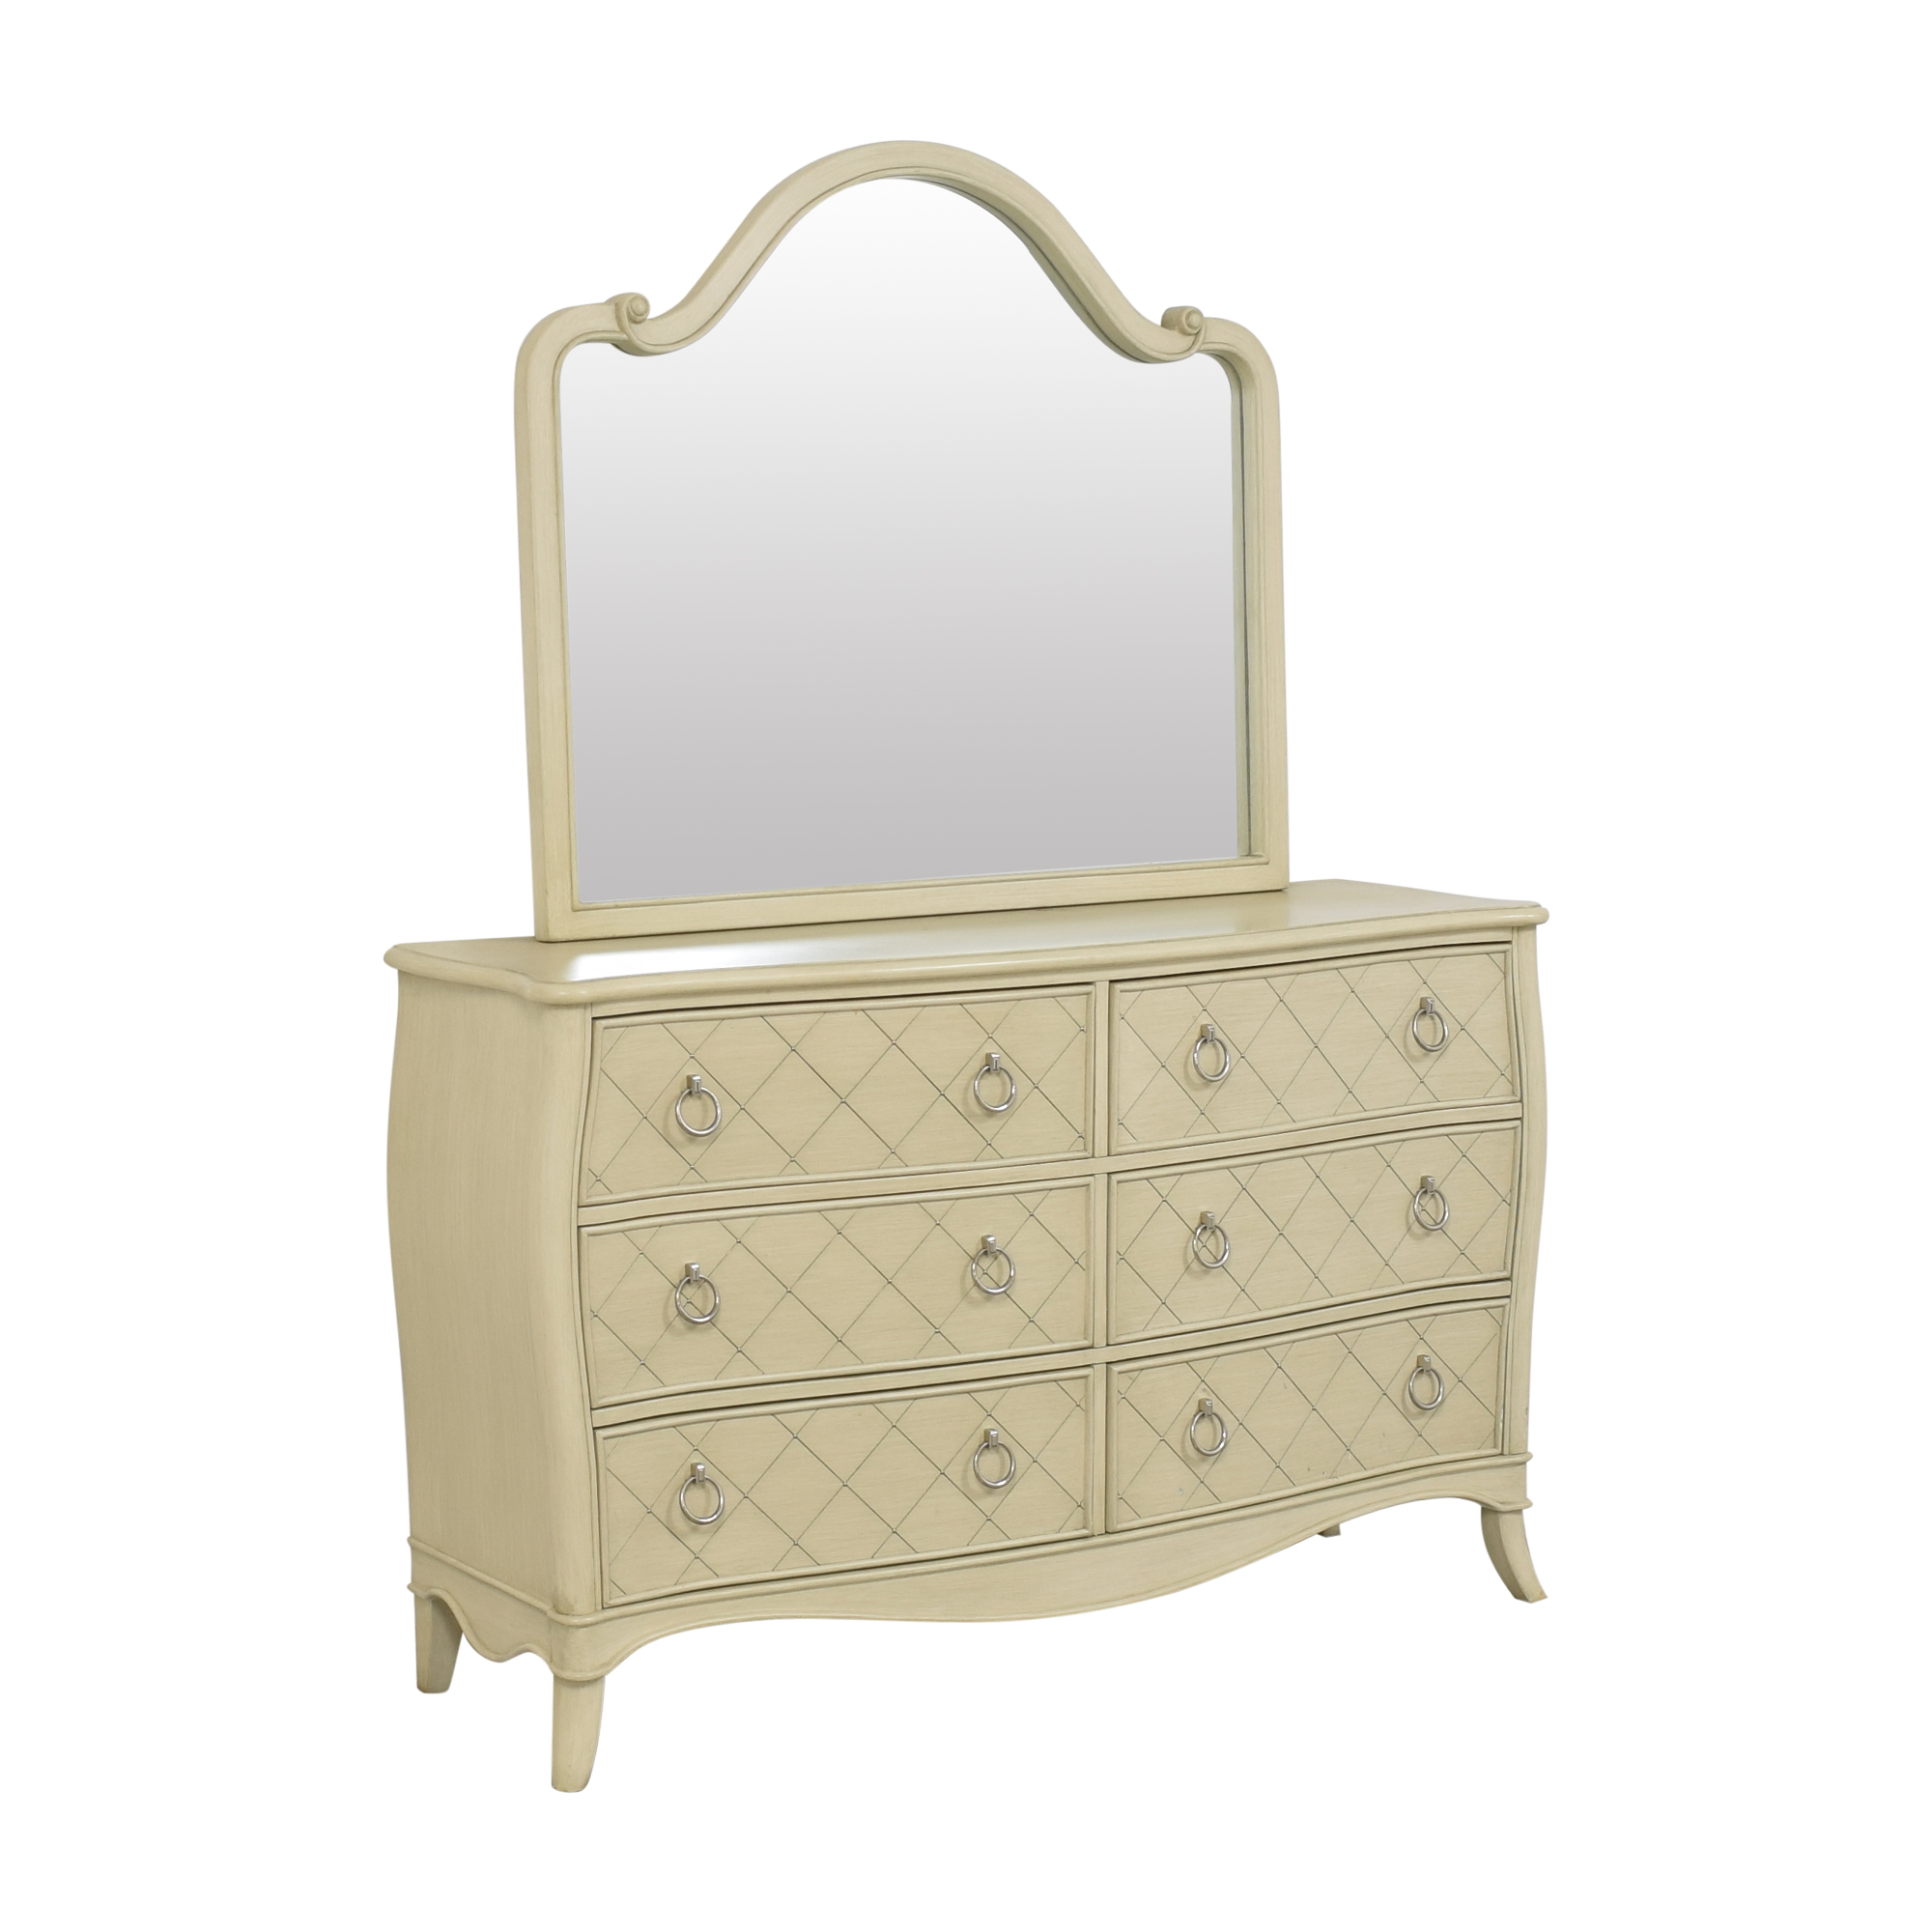 Raymour & Flanigan Raymour & Flanigan Dresser with Mirror coupon